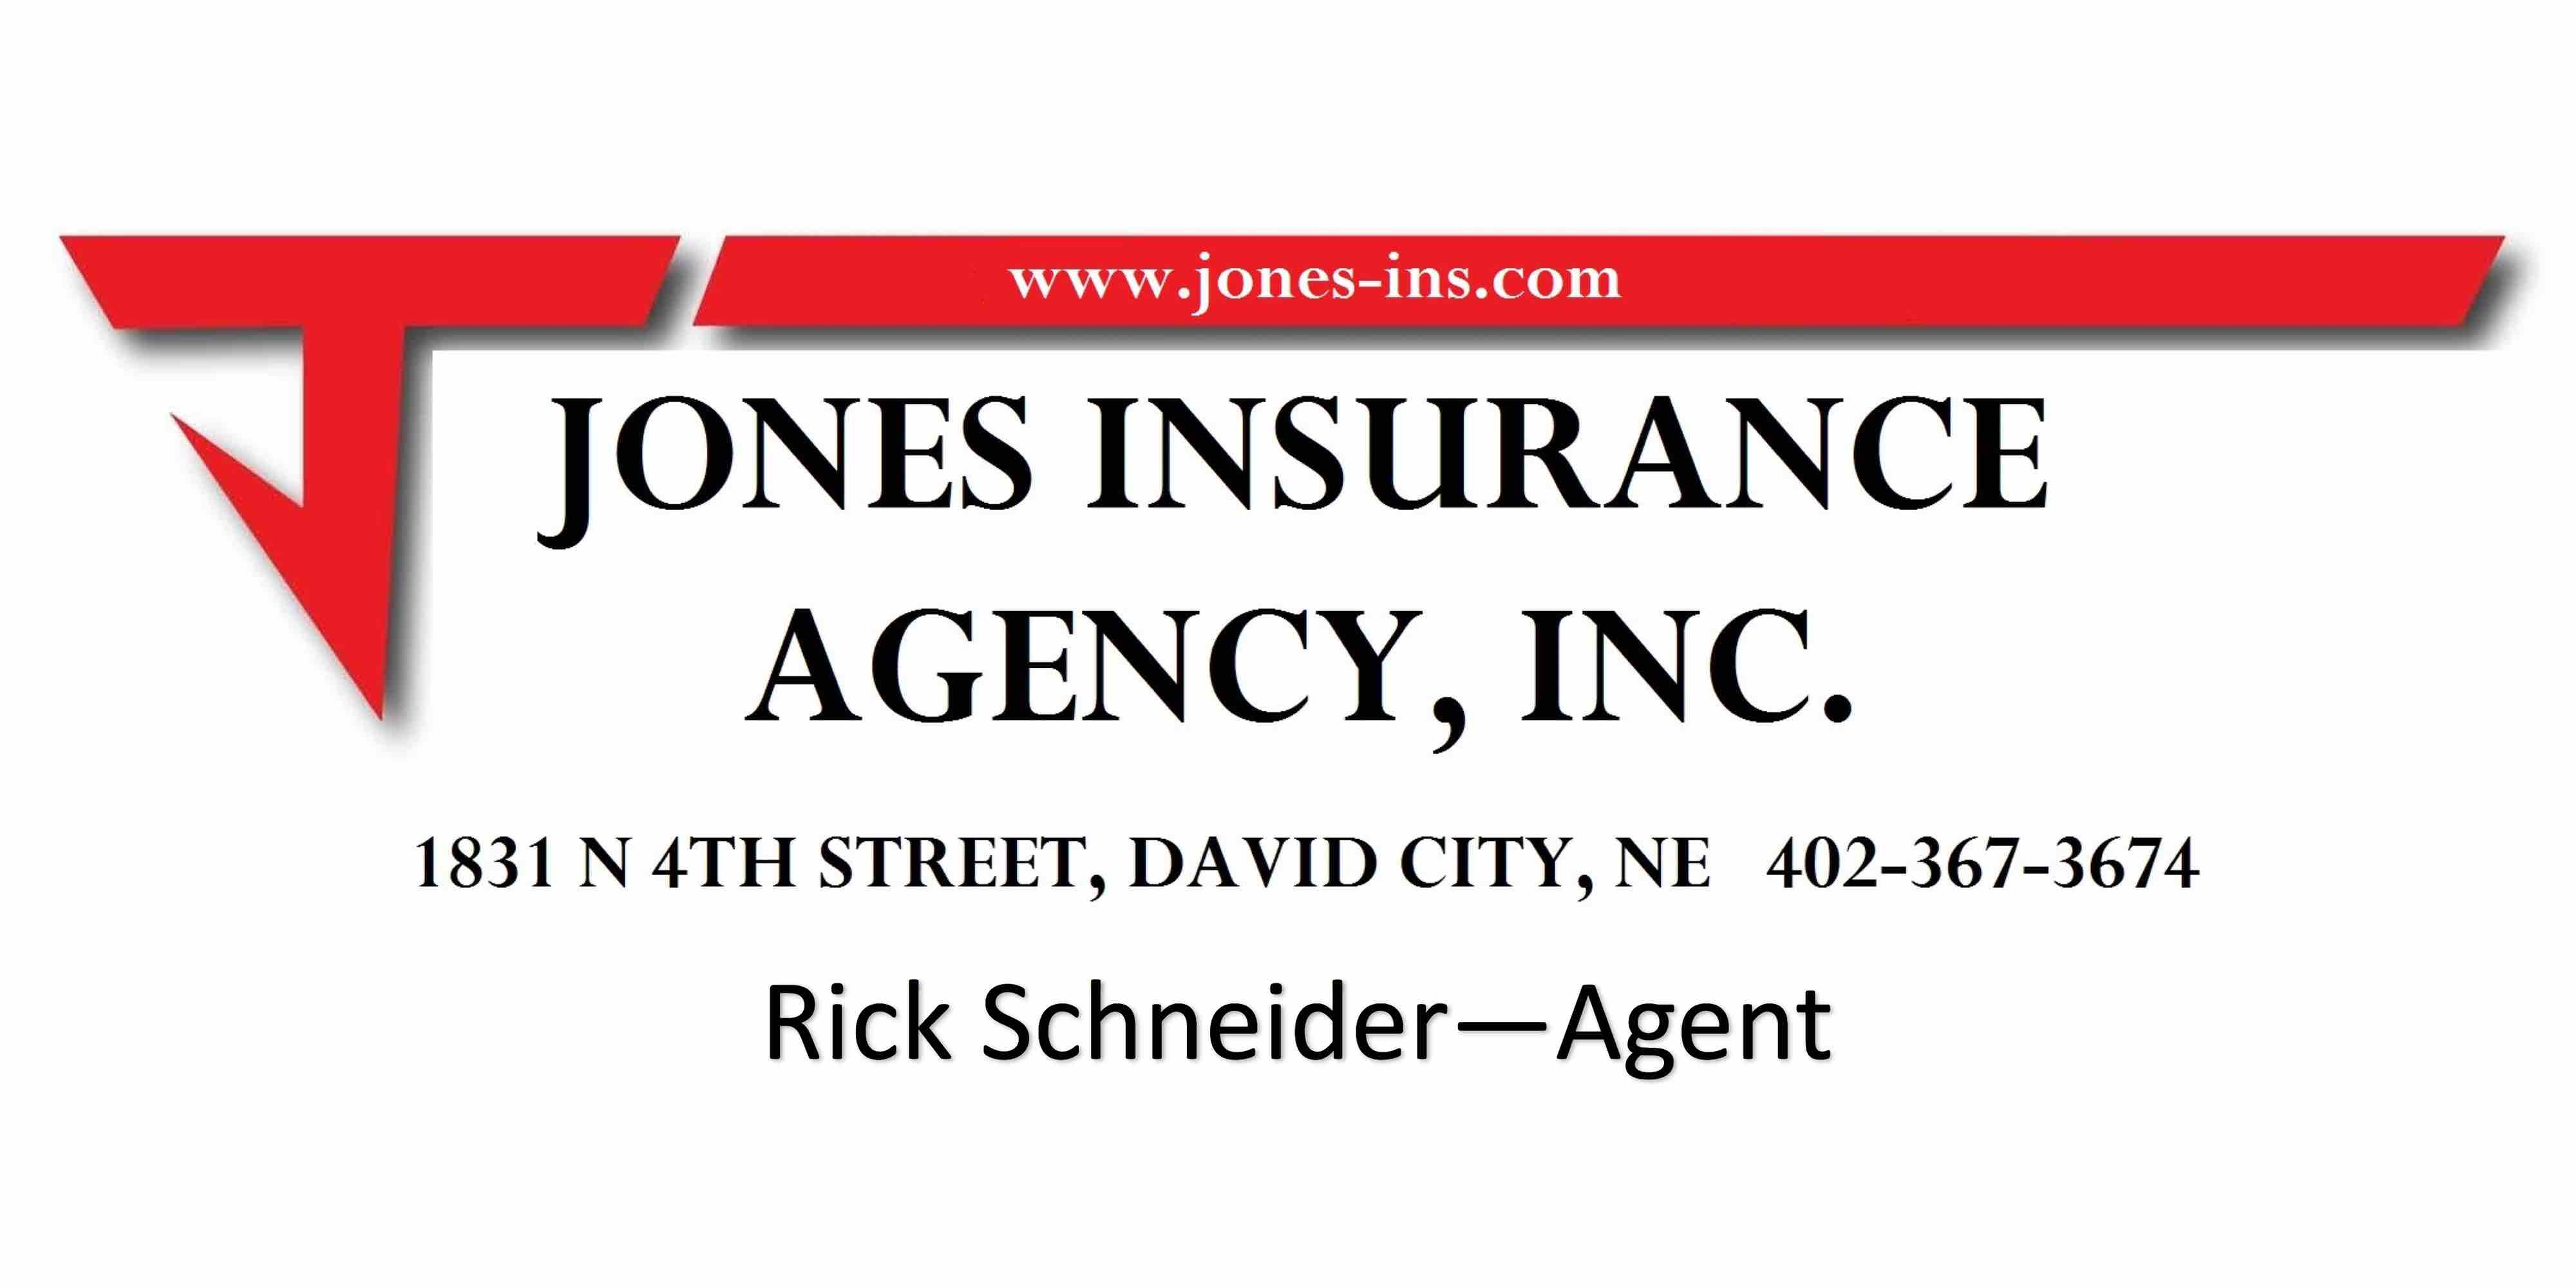 Jones Insurance Agency, Inc. – David City, Nebraska